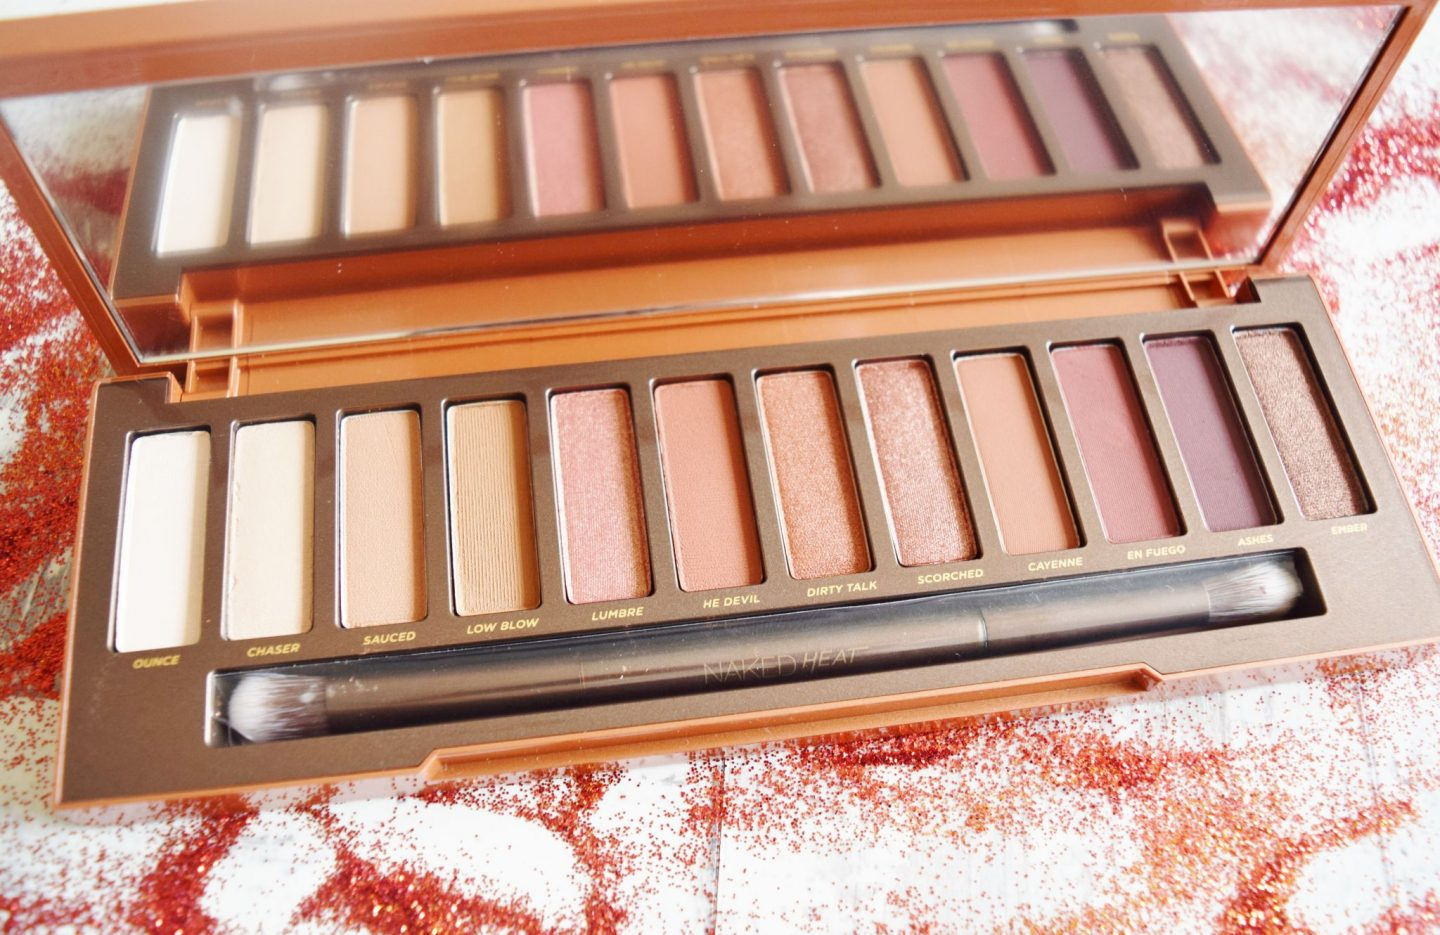 Urban Decay Naked Heat Palette shades